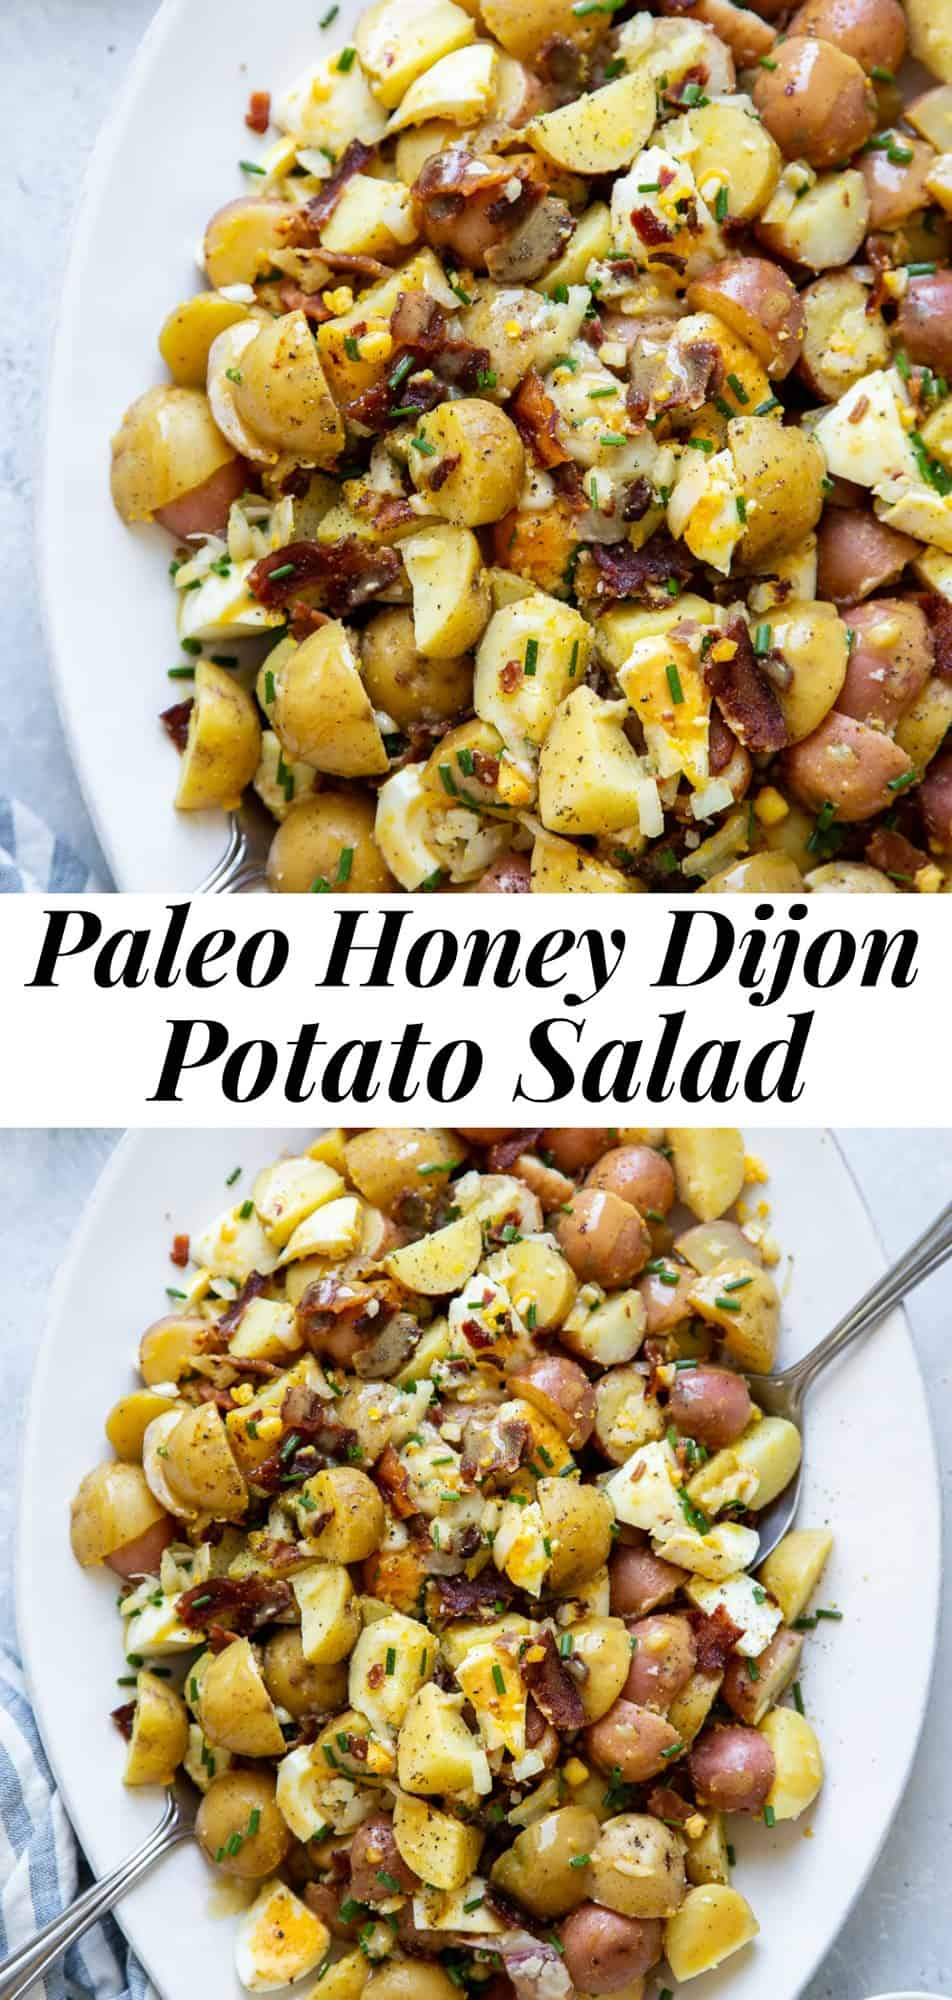 This honey dijon potato salad has tons of flavor and all the goodies you want in your potato salad! Fork tender baby red potatoes with chopped eggs, crispy bacon, onions and chives all tossed in a tangy sweet honey mustard dressing. This healthier paleo potato salad is dairy free, soy free, mayo free and refined sugar free. #paleo #cleaneating #potatosalad